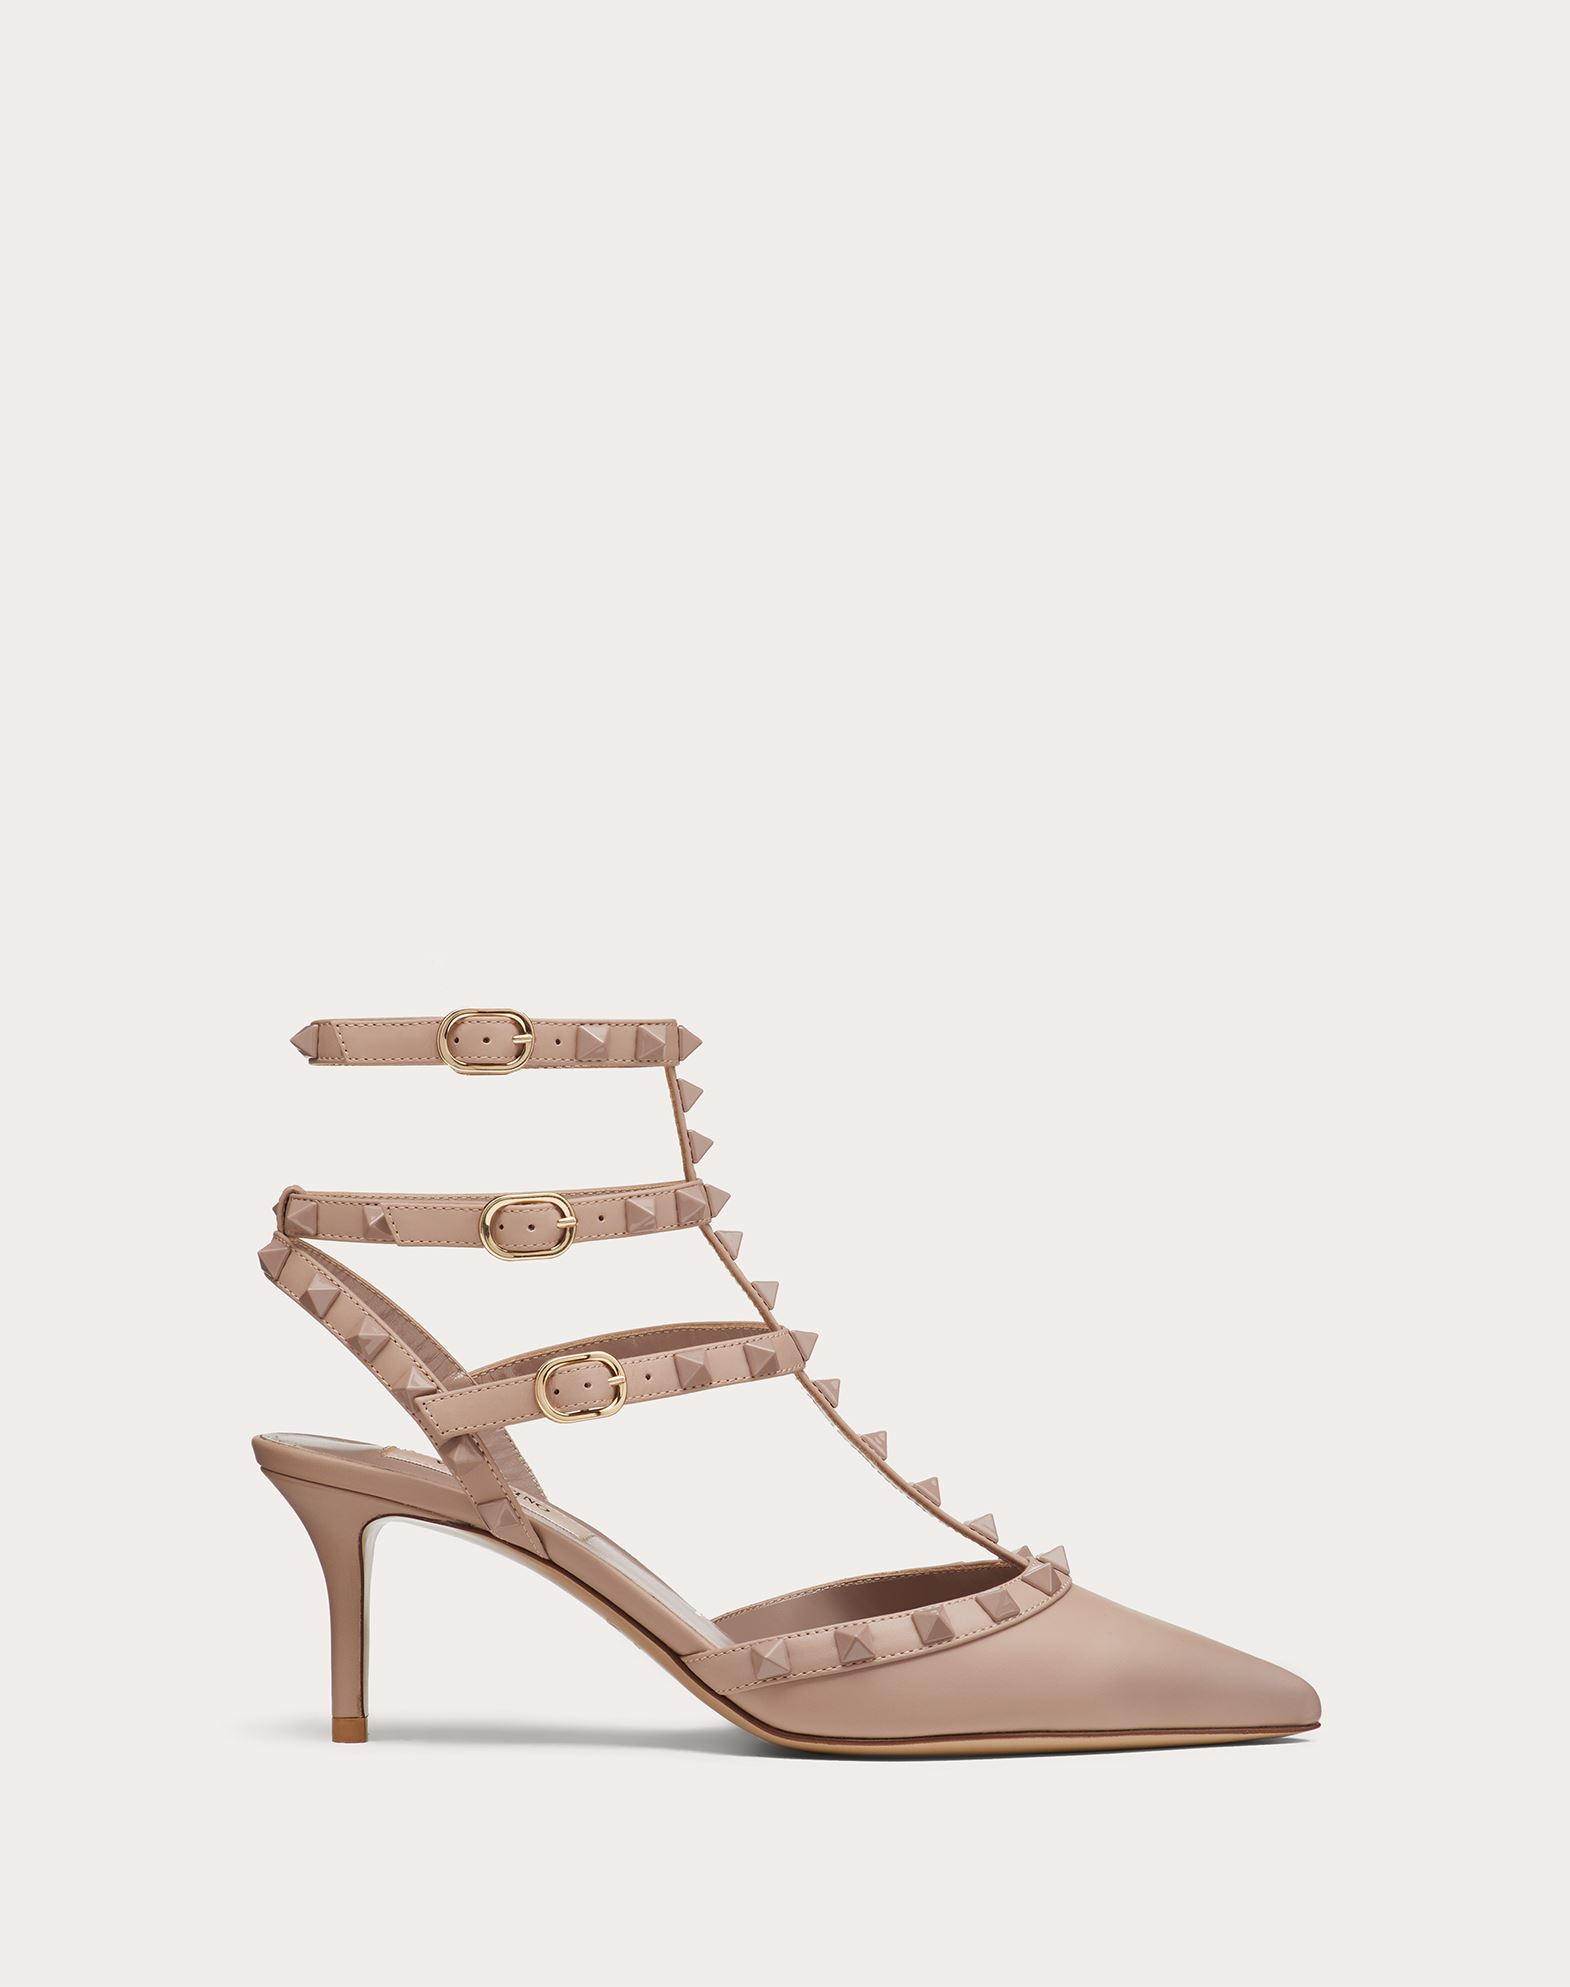 Rockstud Ankle Strap Calfskin Leather Pump with Tonal Studs 65 mm